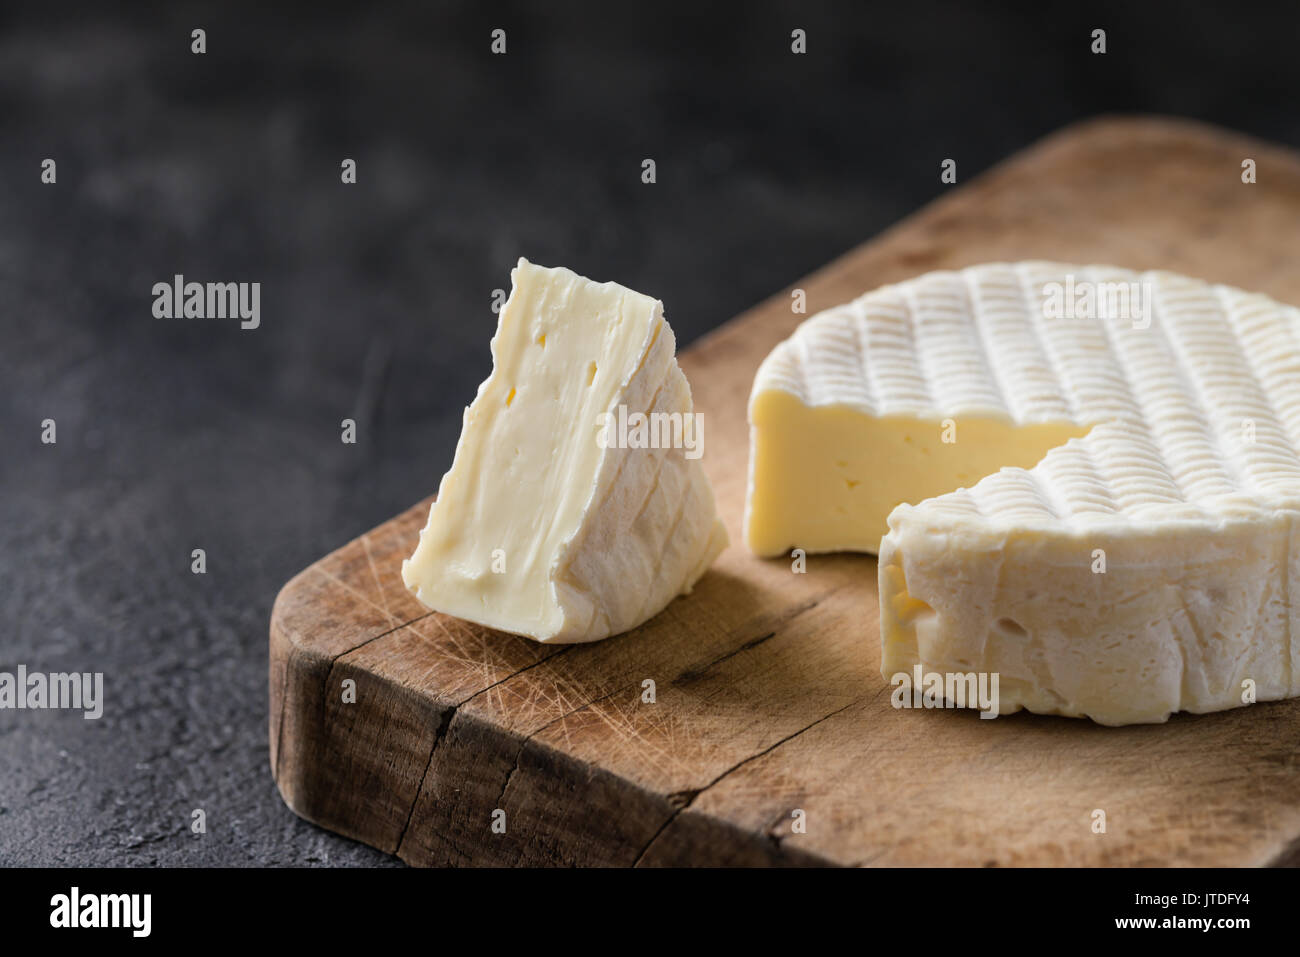 French soft cheese from Normandy region with a slice on a wooden board on dark rustic background - Stock Image